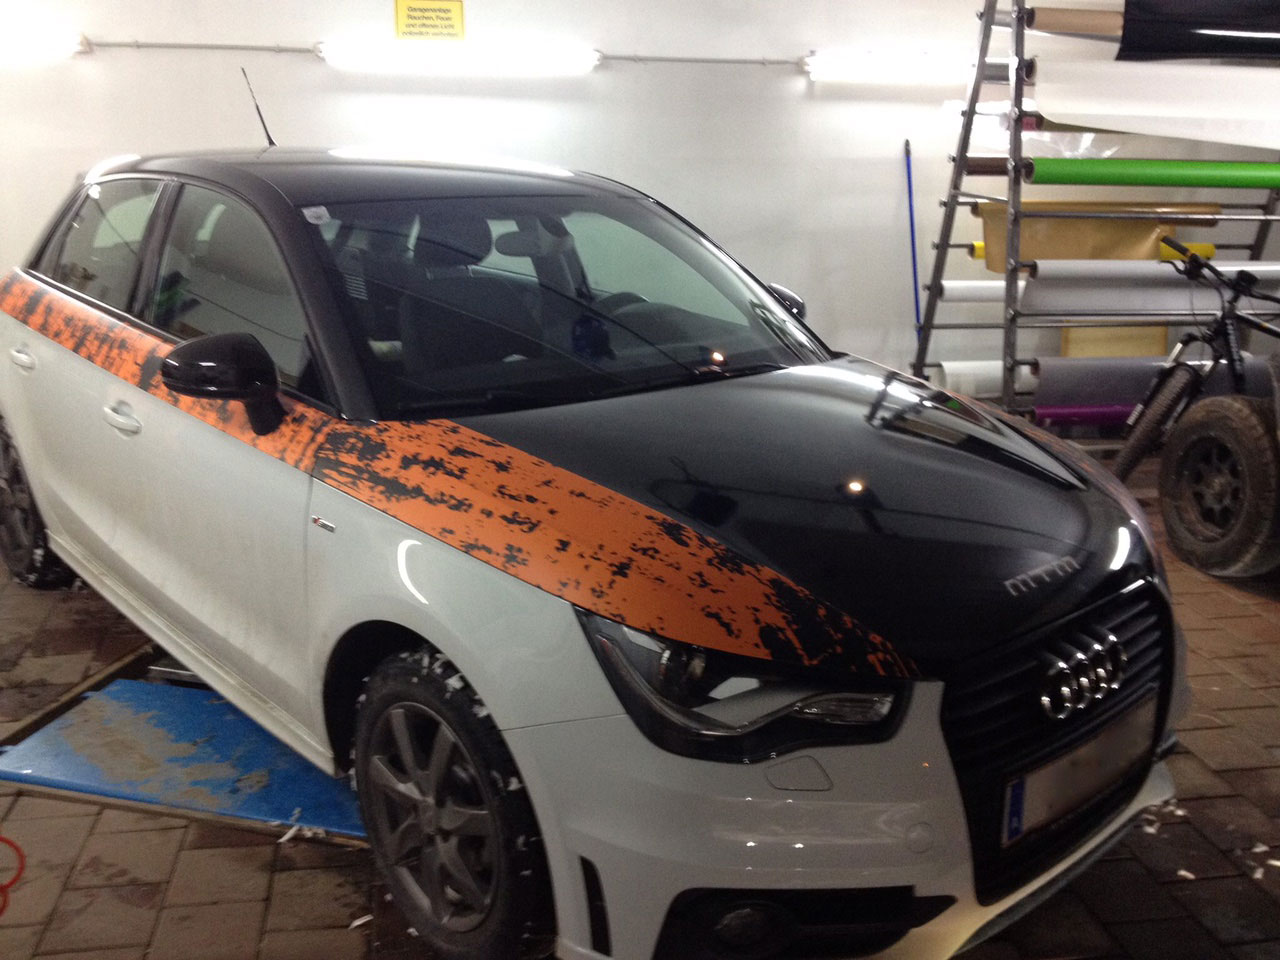 Exclusiv Design Carwrapping